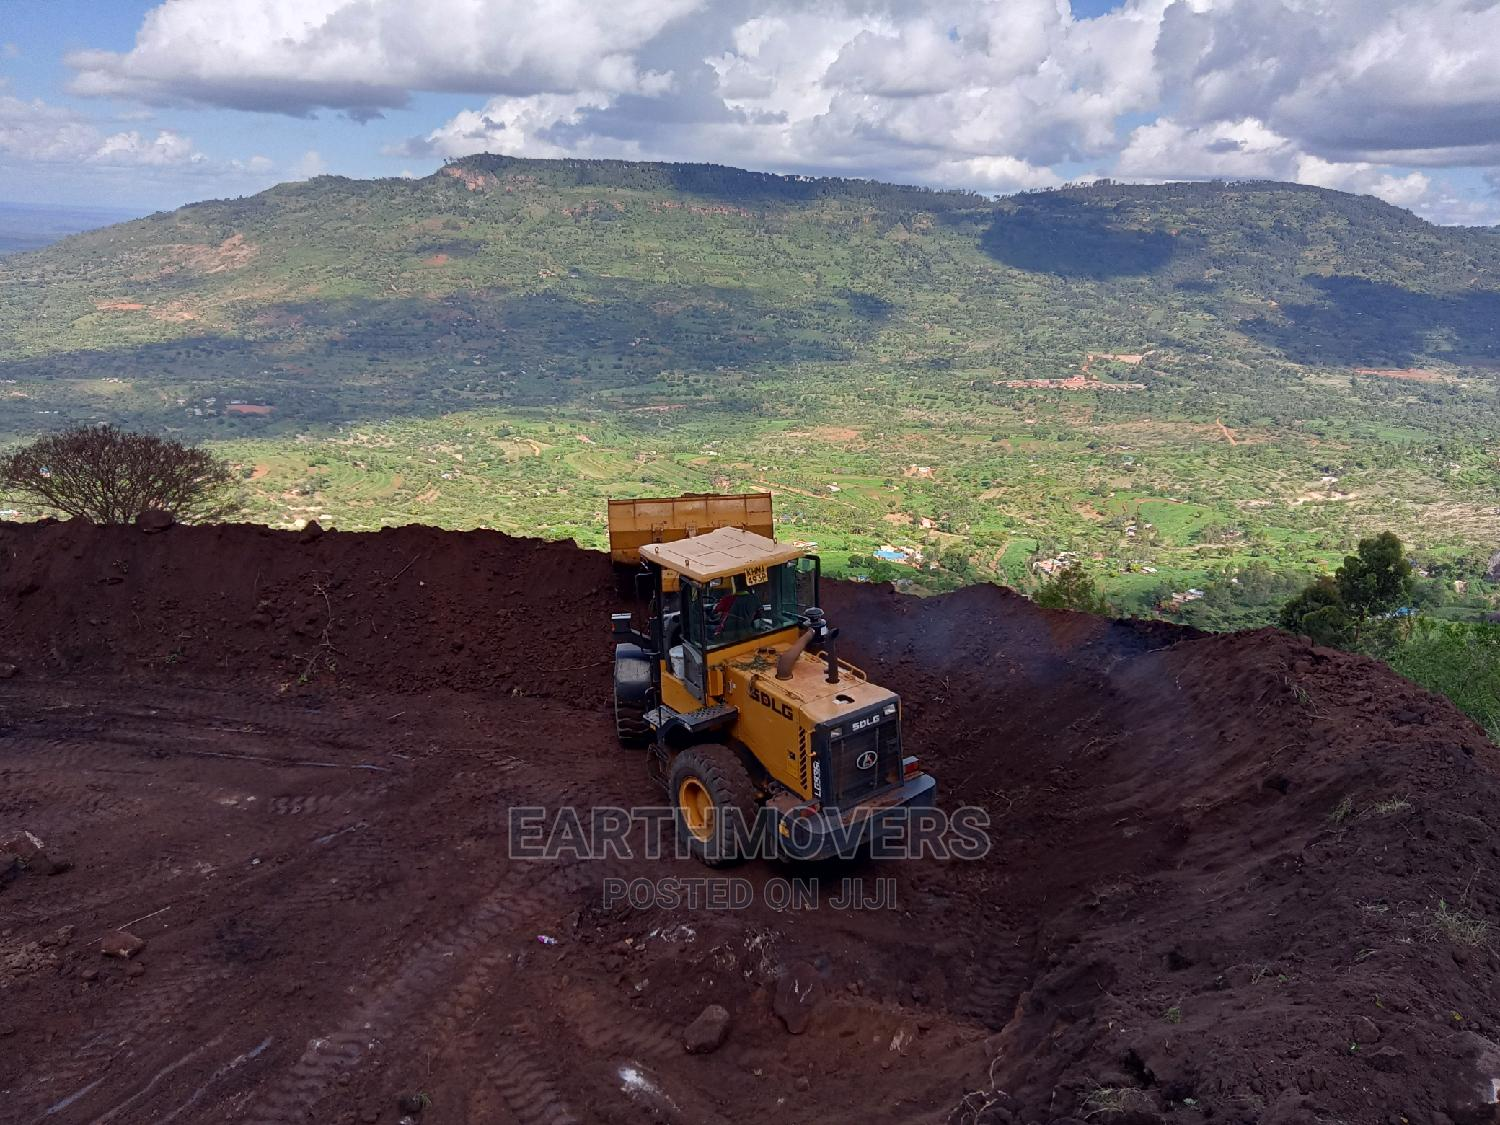 Earth Mover Equipments Contracting   Heavy Equipment for sale in Athi River, Machakos, Kenya